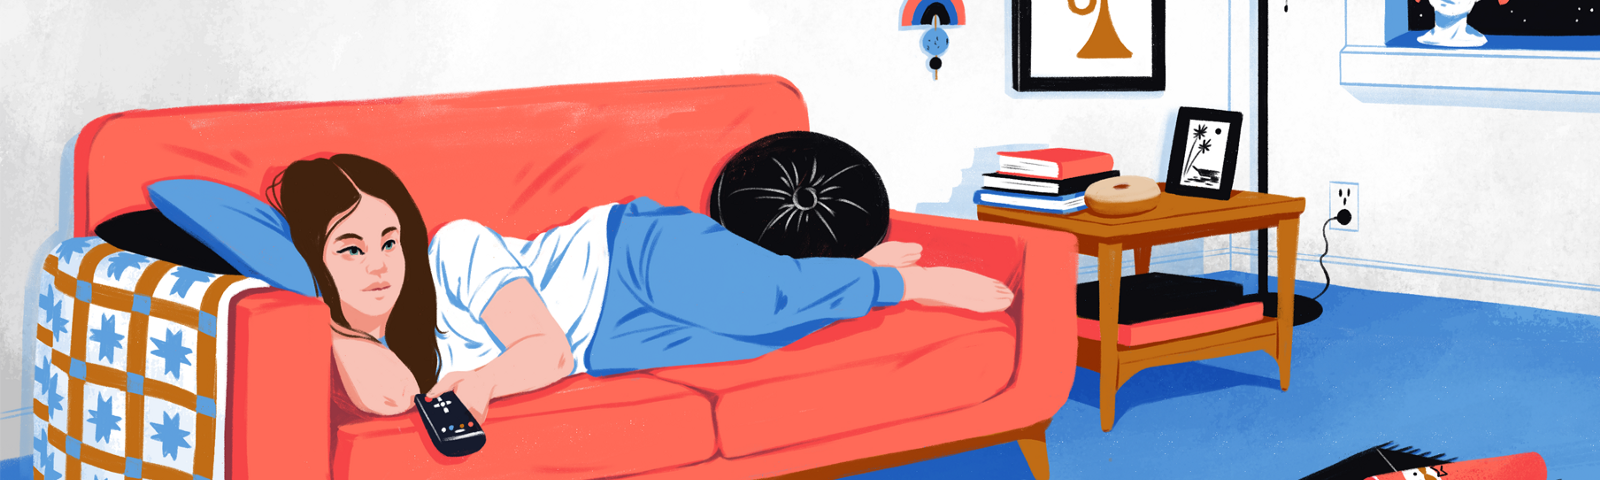 Illustration of a woman lying on her couch watching TV in comfort.